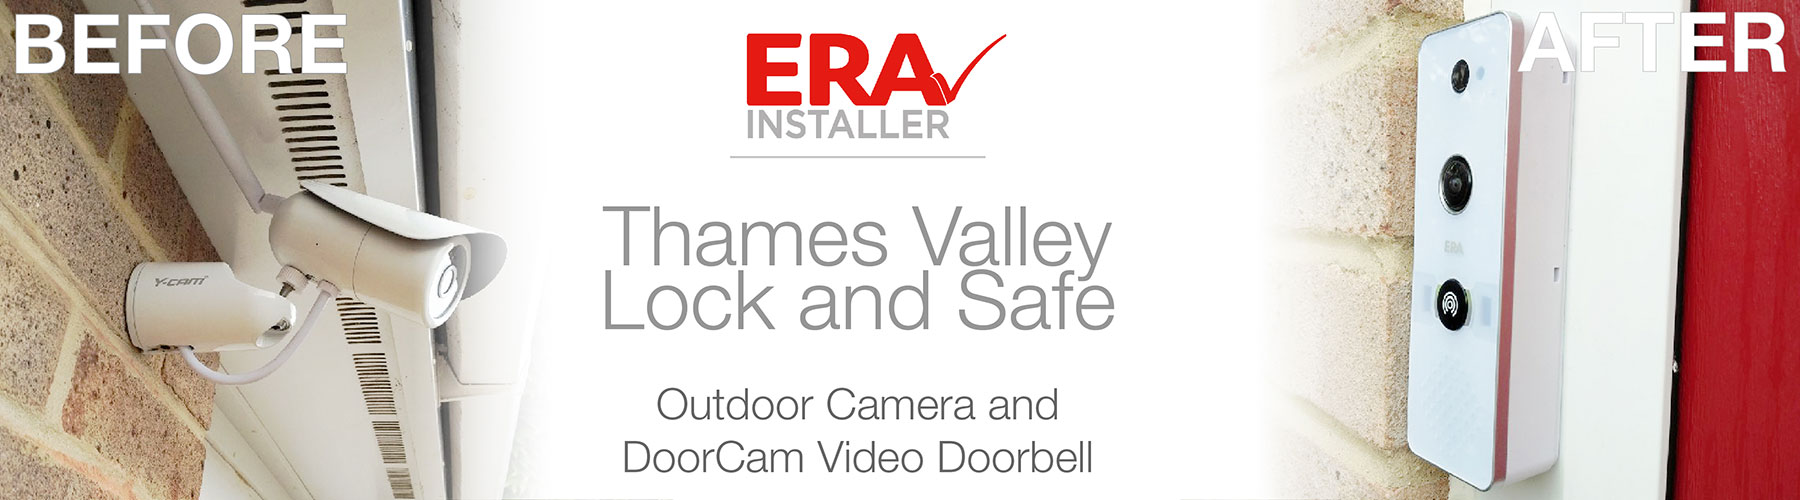 ERA Installer Testimonial Thames Valley